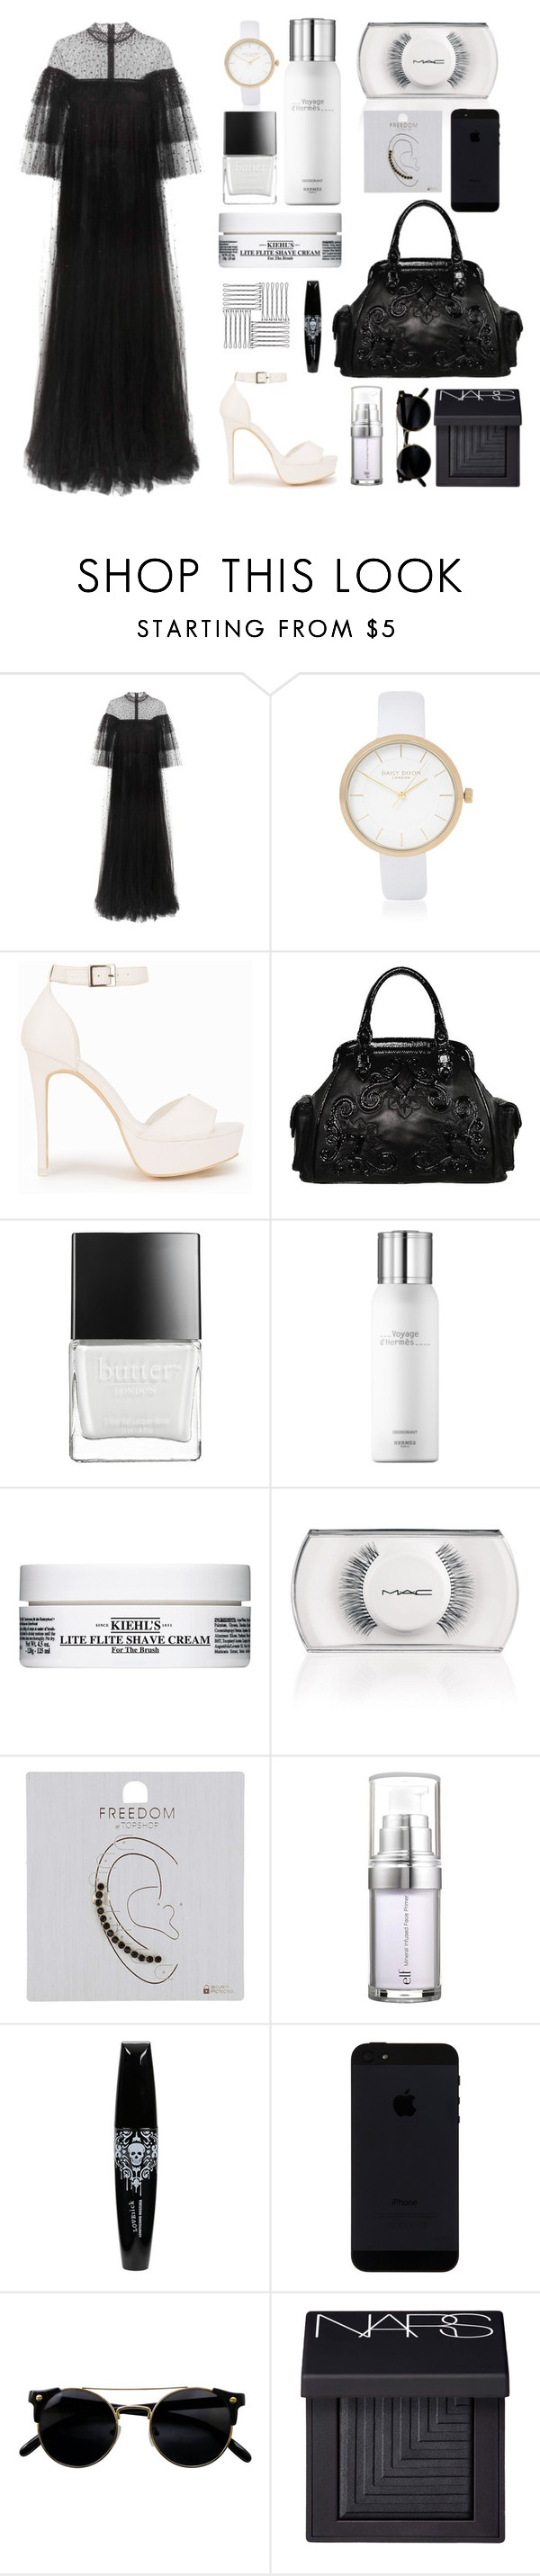 """Untitled #9"" by missmoon94 ❤ liked on Polyvore featuring Valentino, River Island, Nly Shoes, Isabella Fiore, Butter London, Hermès, Kiehl's, MAC Cosmetics, Topshop and e.l.f."